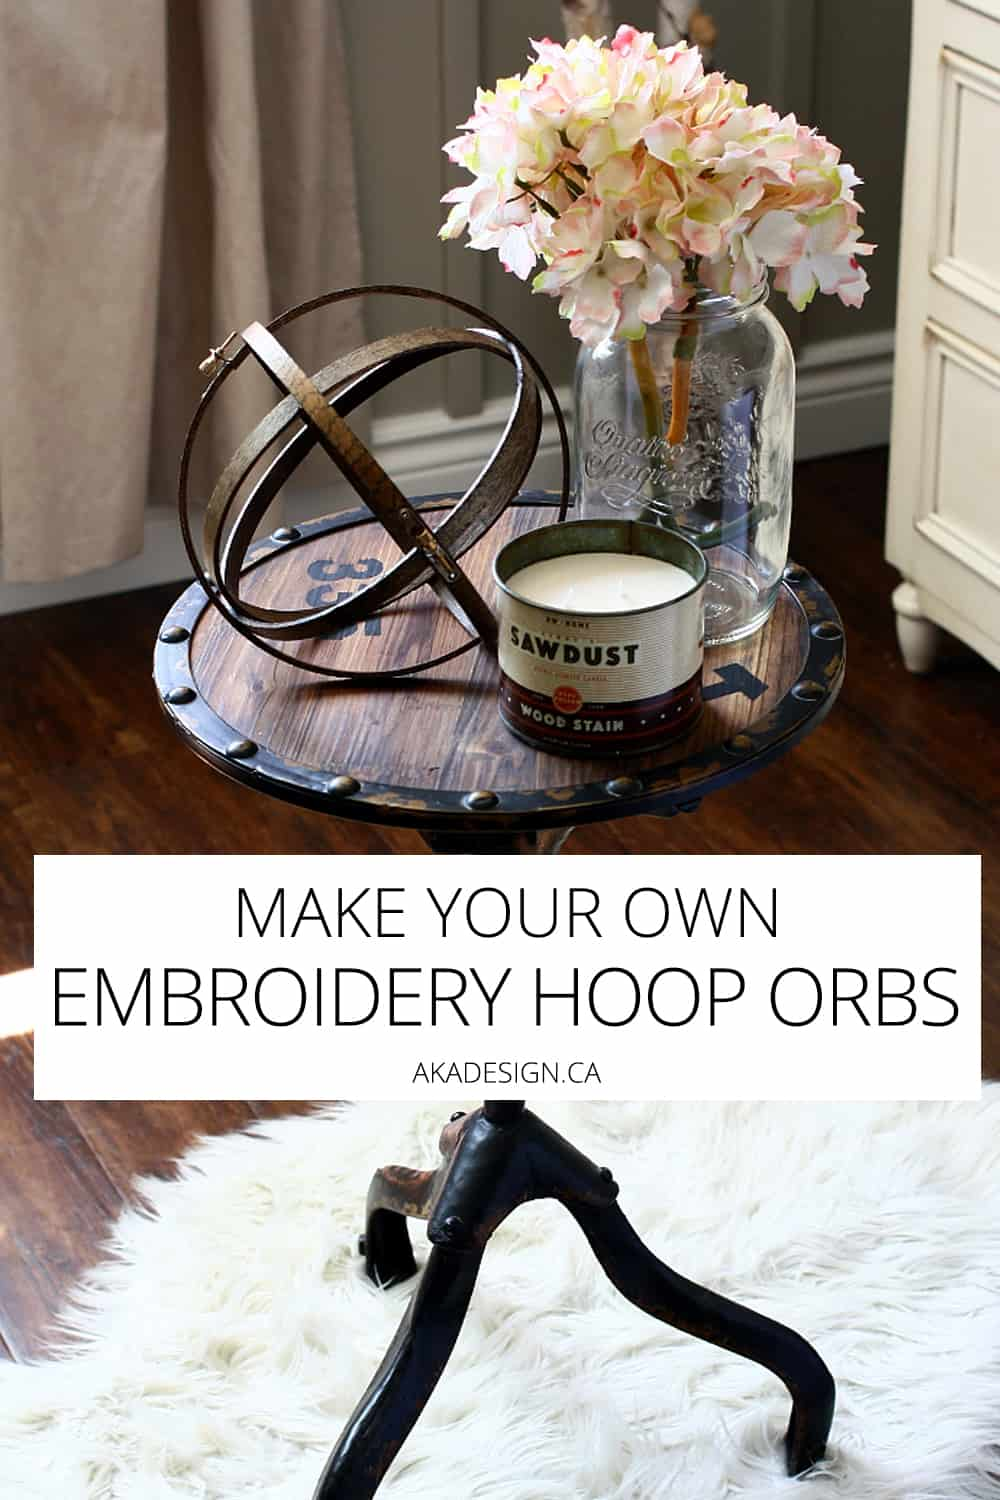 embroidery hoop orbs-make your own